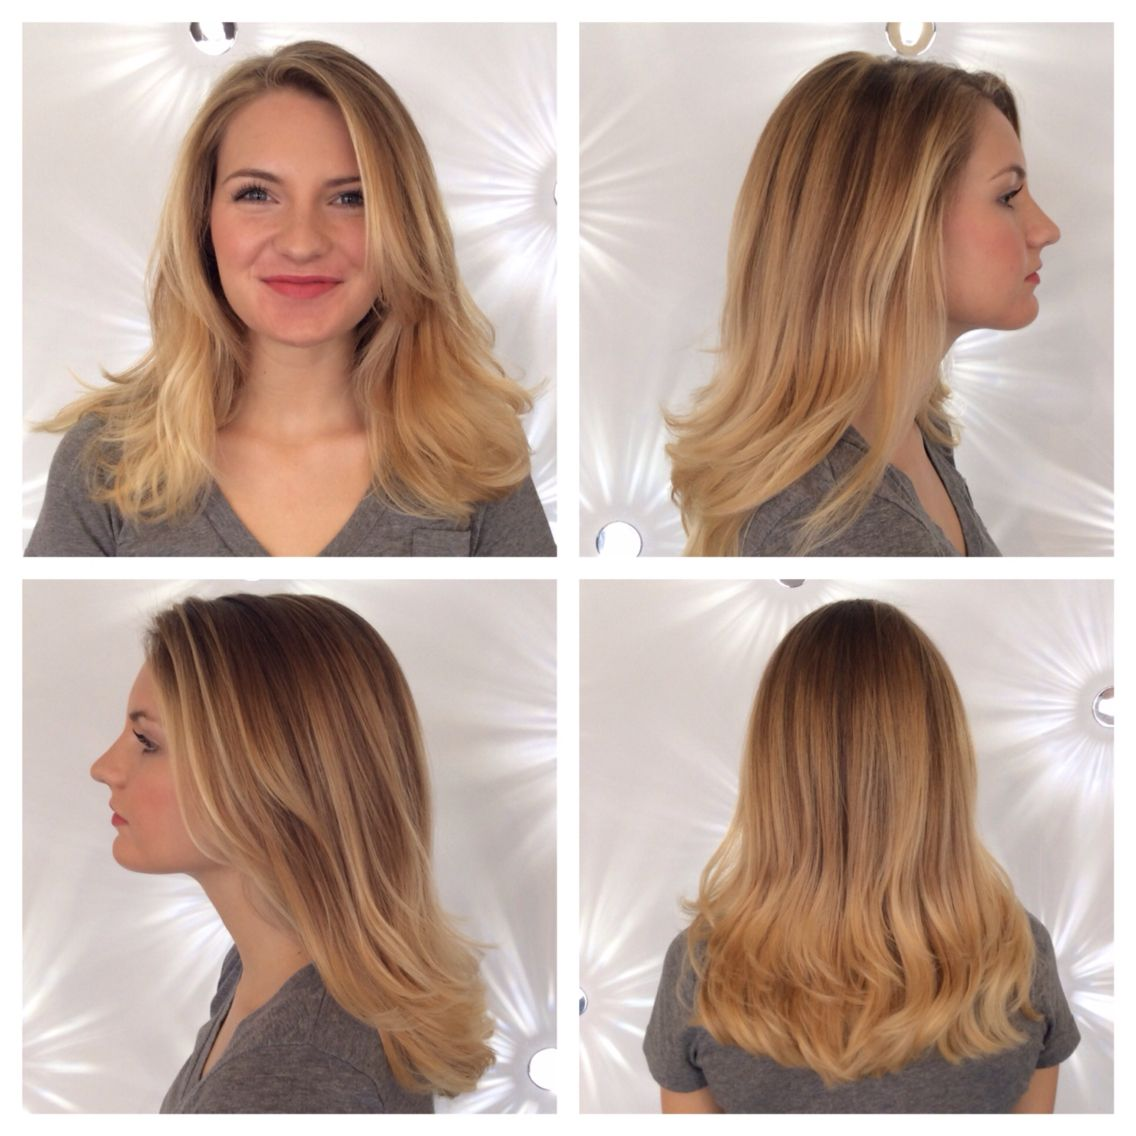 Beautiful blonde balayage! Aveda color is the best. Come